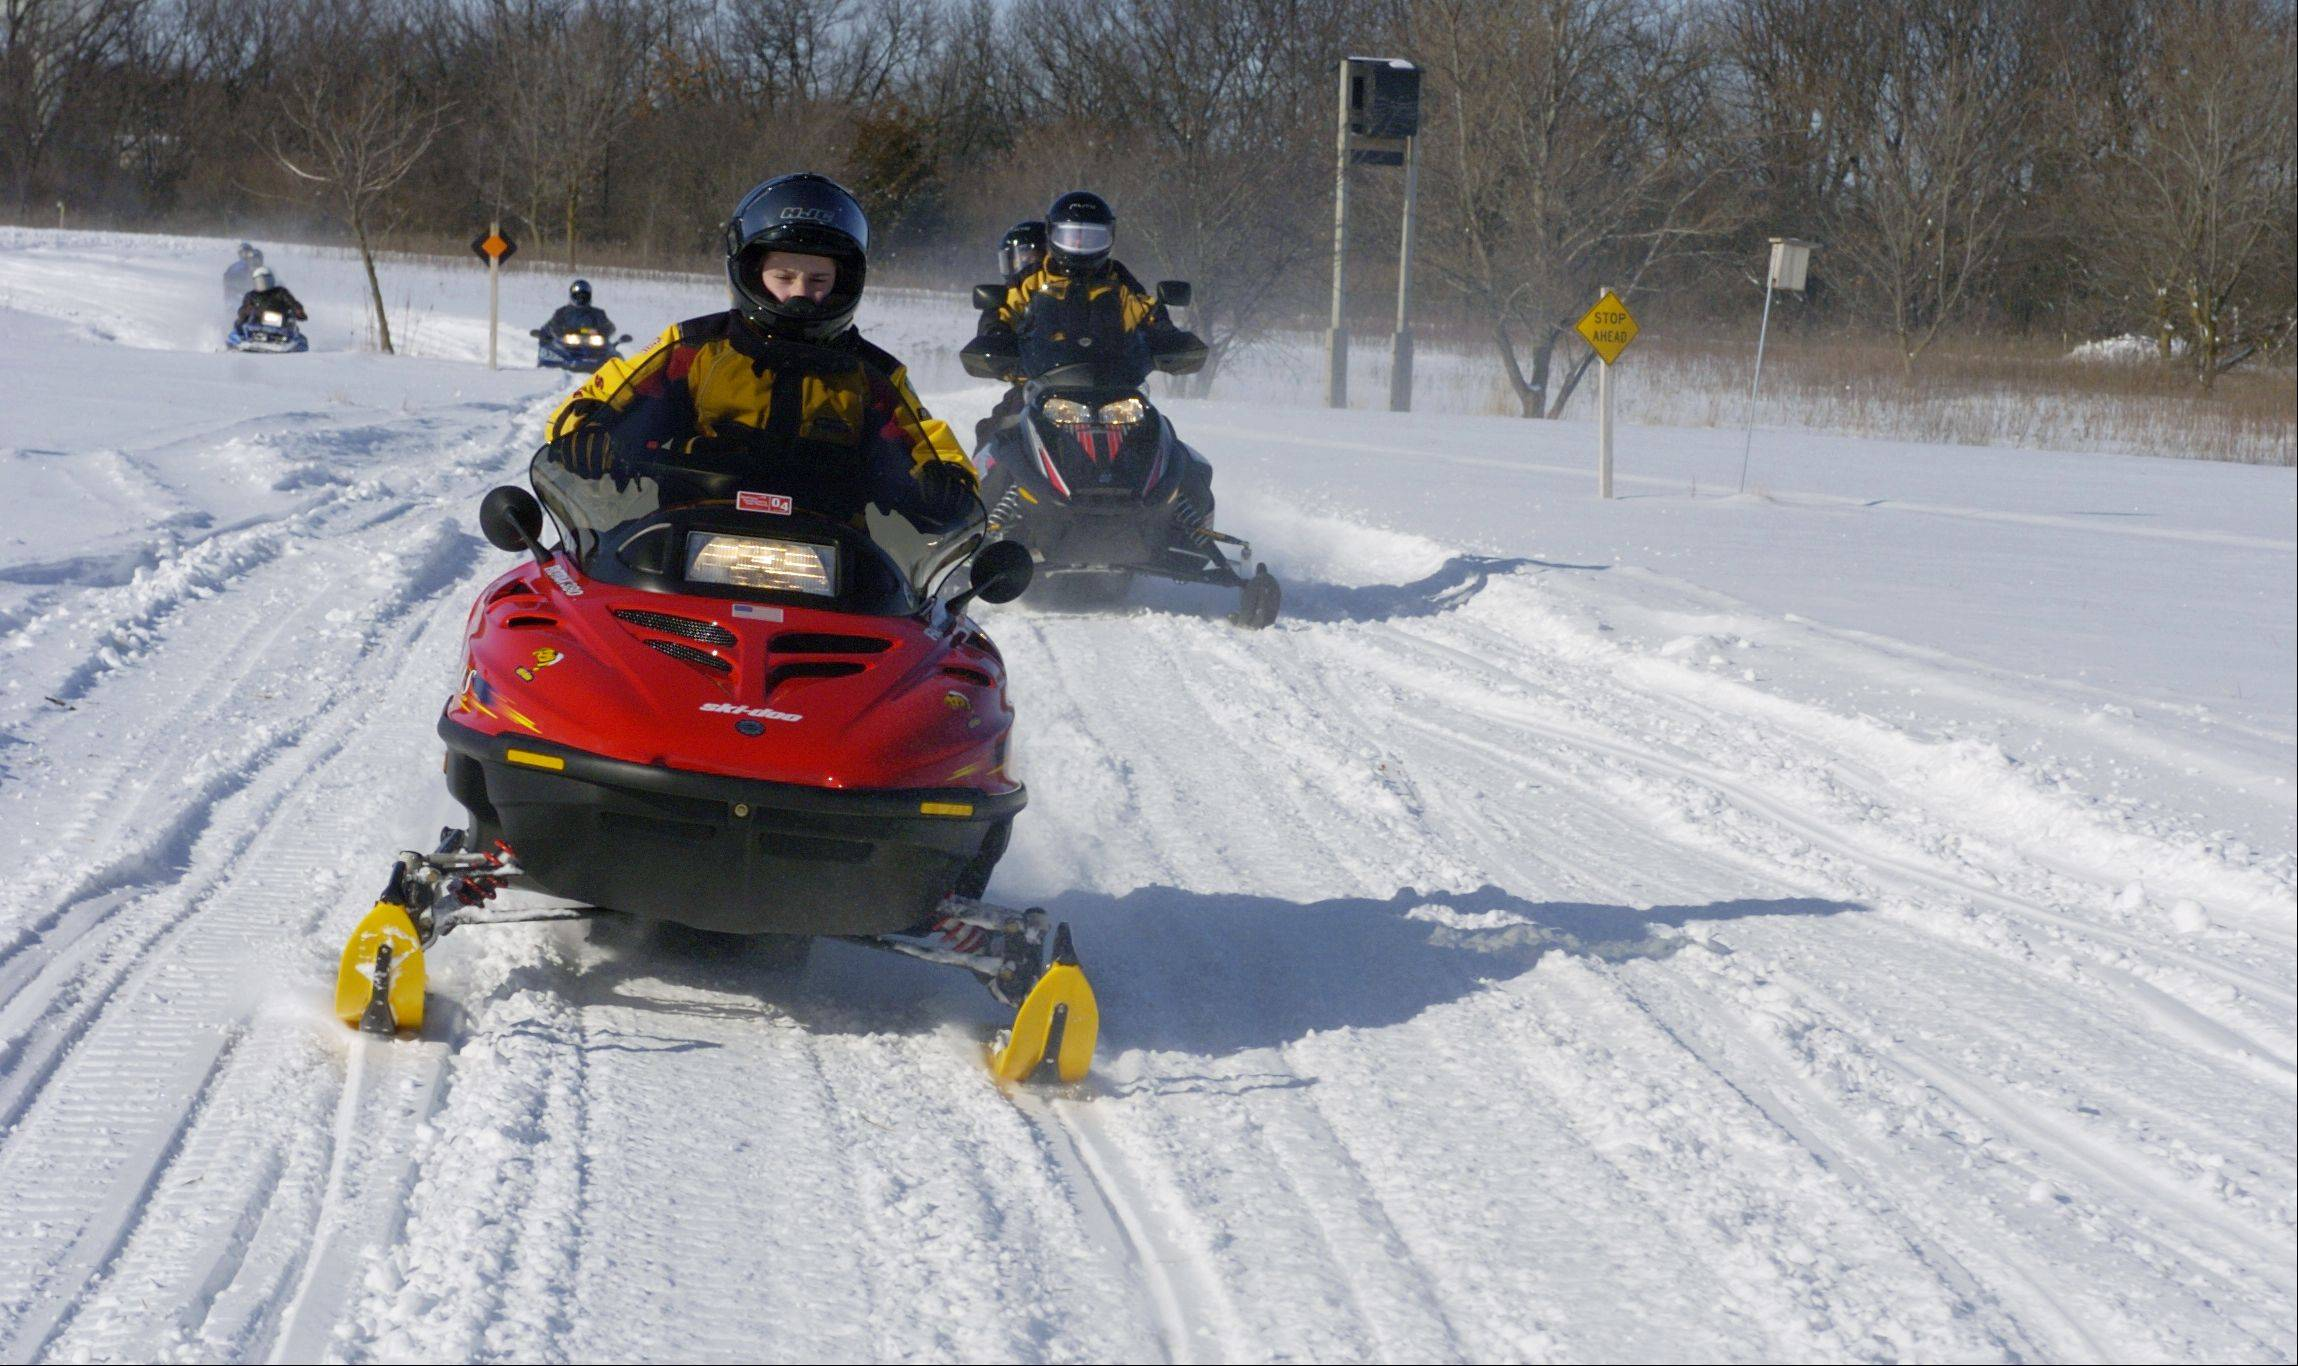 Riders participate in a Northeastern Illinois Association of Snowmobile Clubs safety event at the Lakewood Forest Preserve near Wauconda.